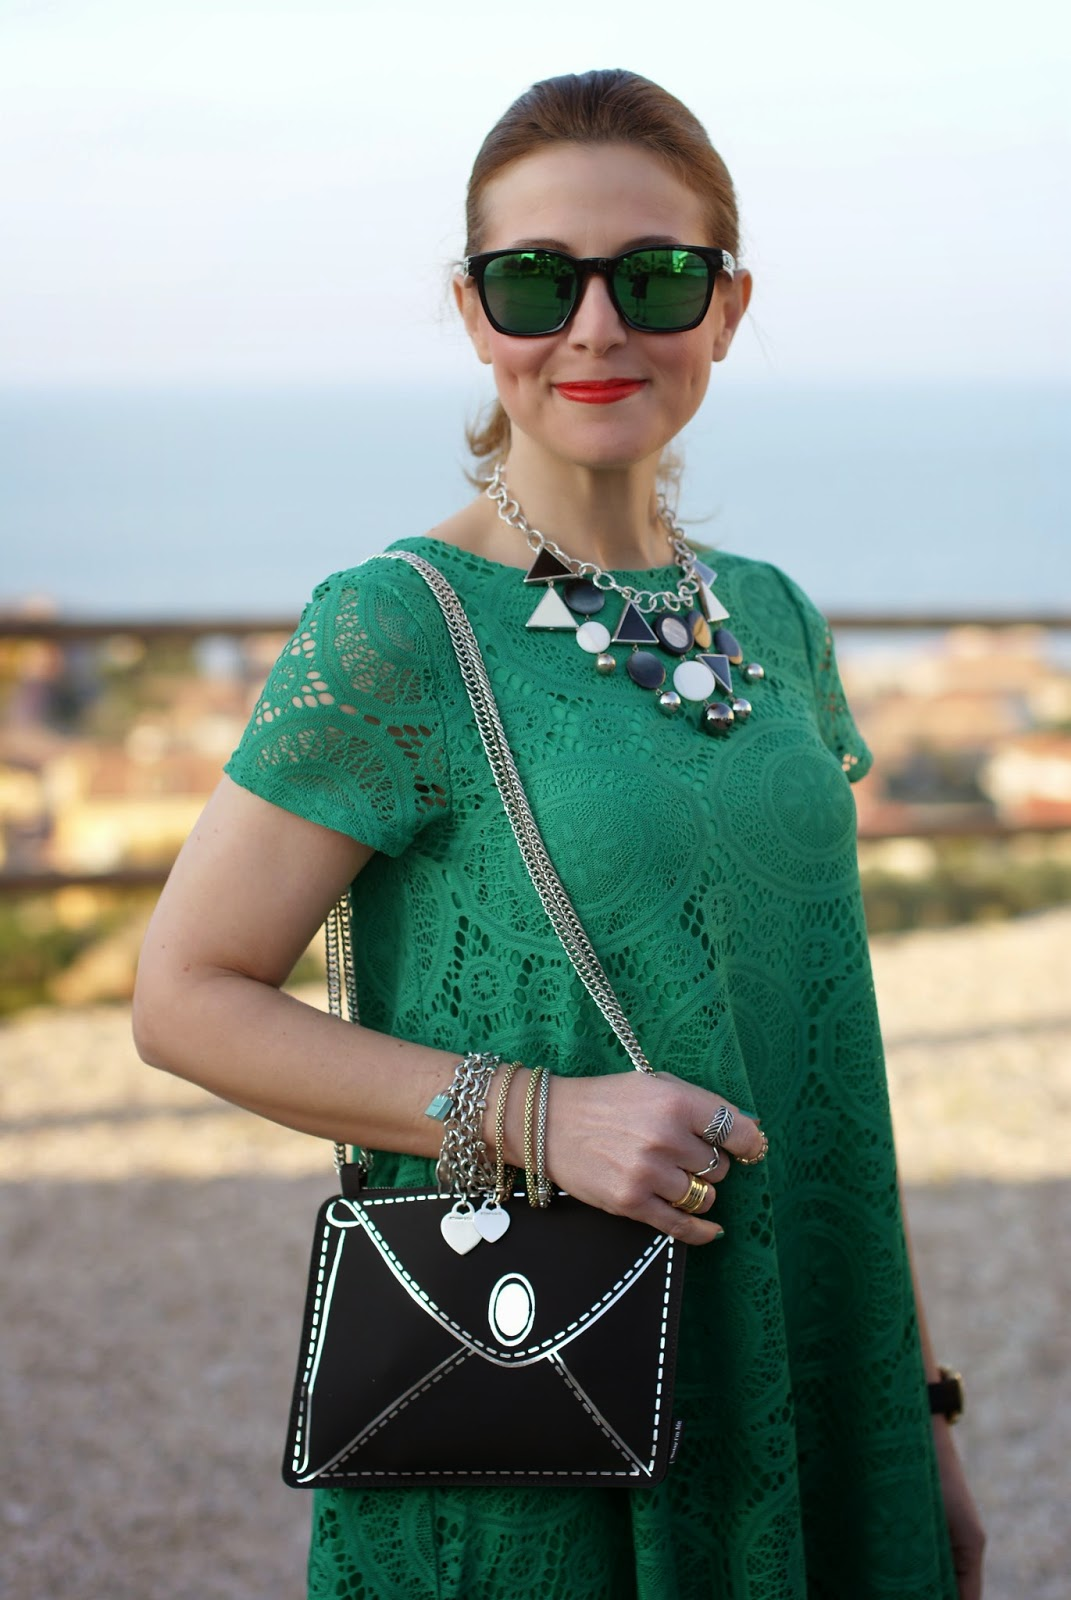 Vitti Ferria Contin jewelry, Today I'm me evening bag, Sheinside lace green dress, Fashion and Cookies, fashion blogger